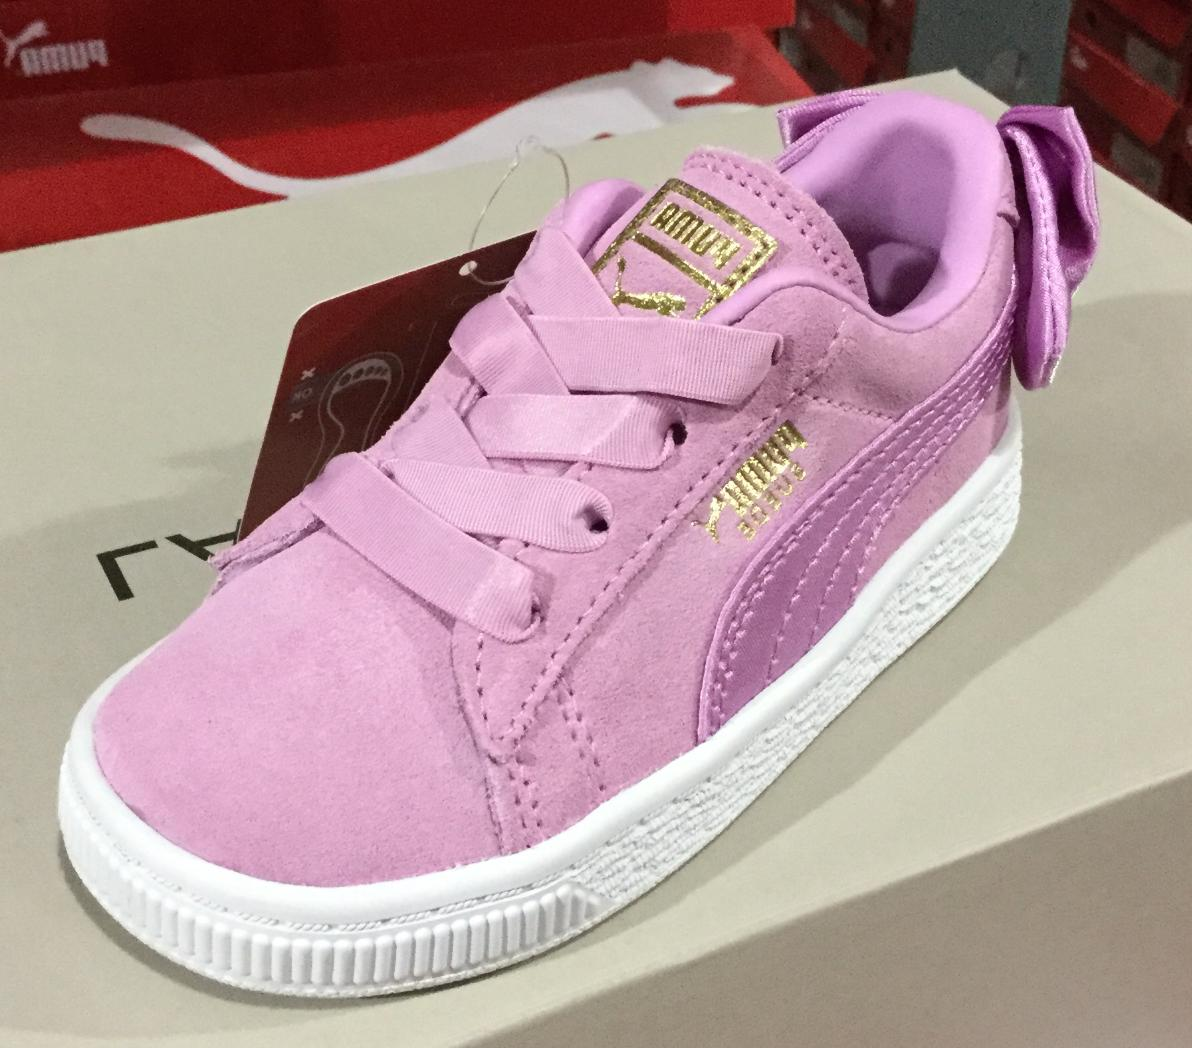 Puma Suede Bow Infant Toddler's Casual Shoes Orchid 367320 L